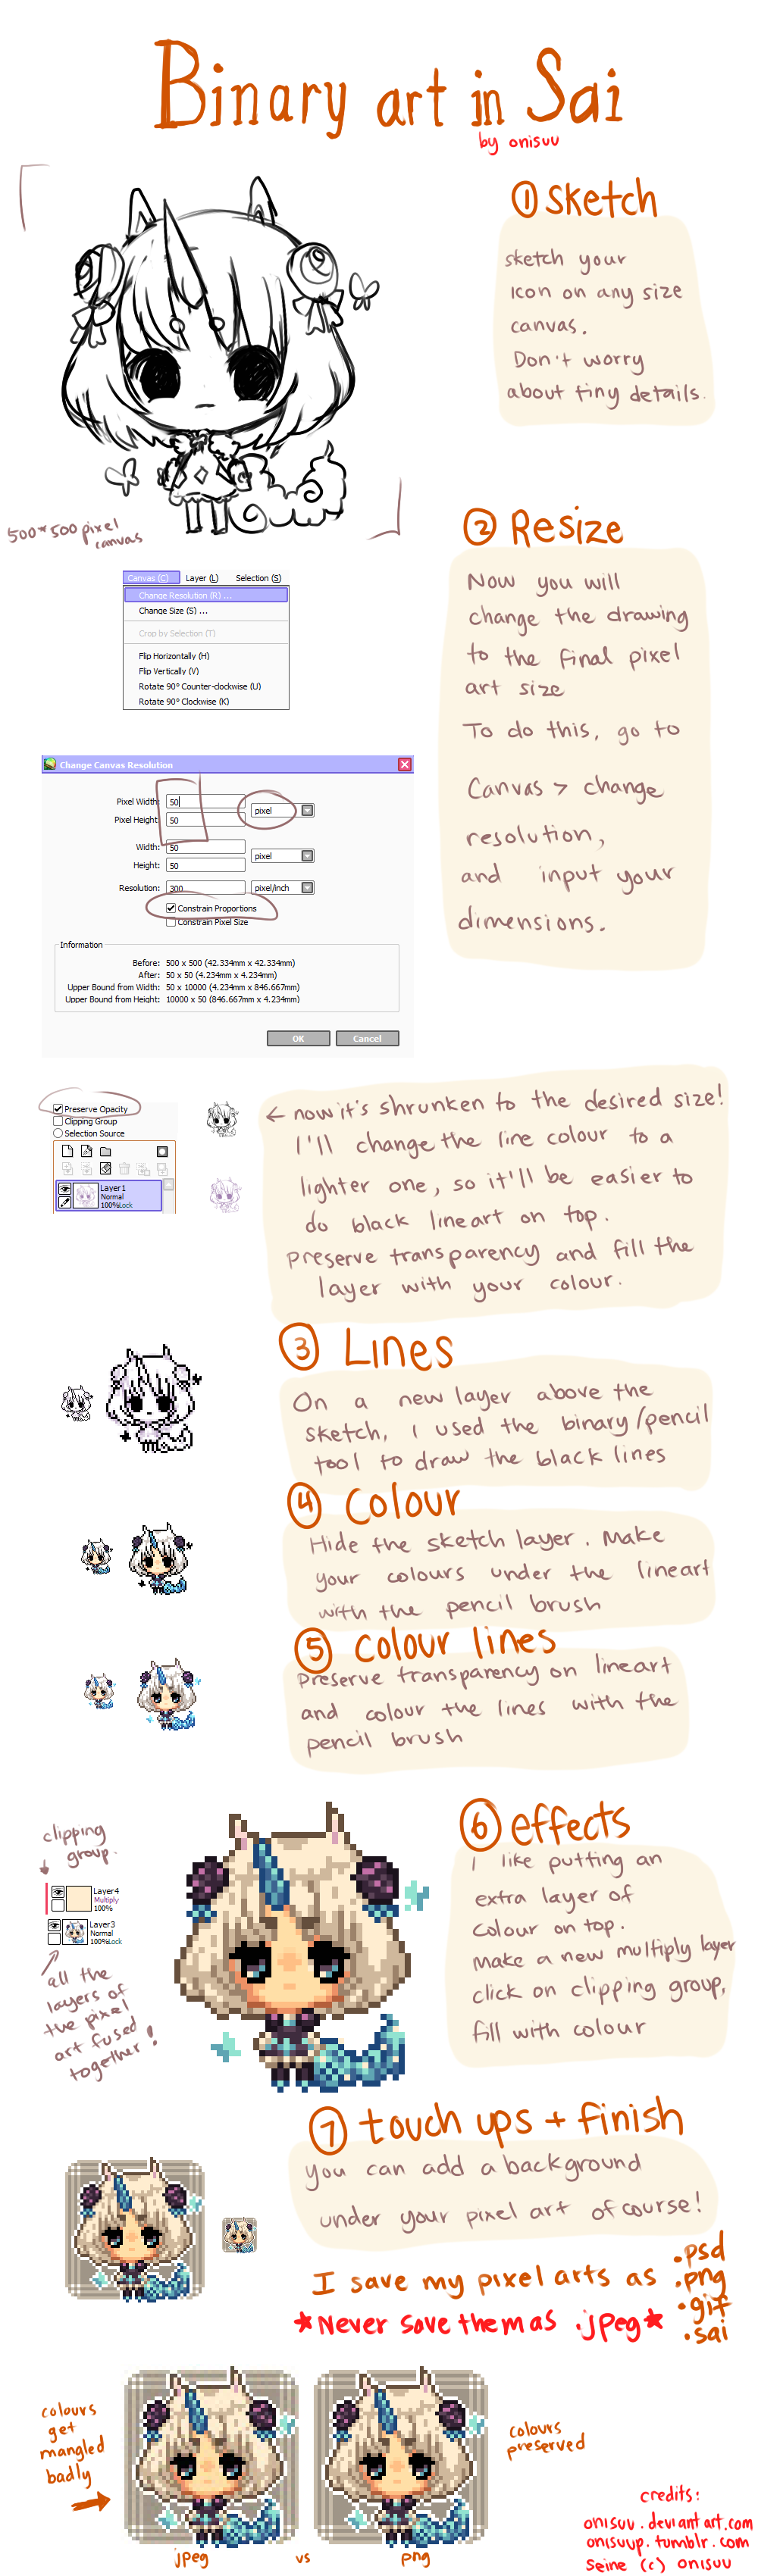 how to change paint size in paint tool sai